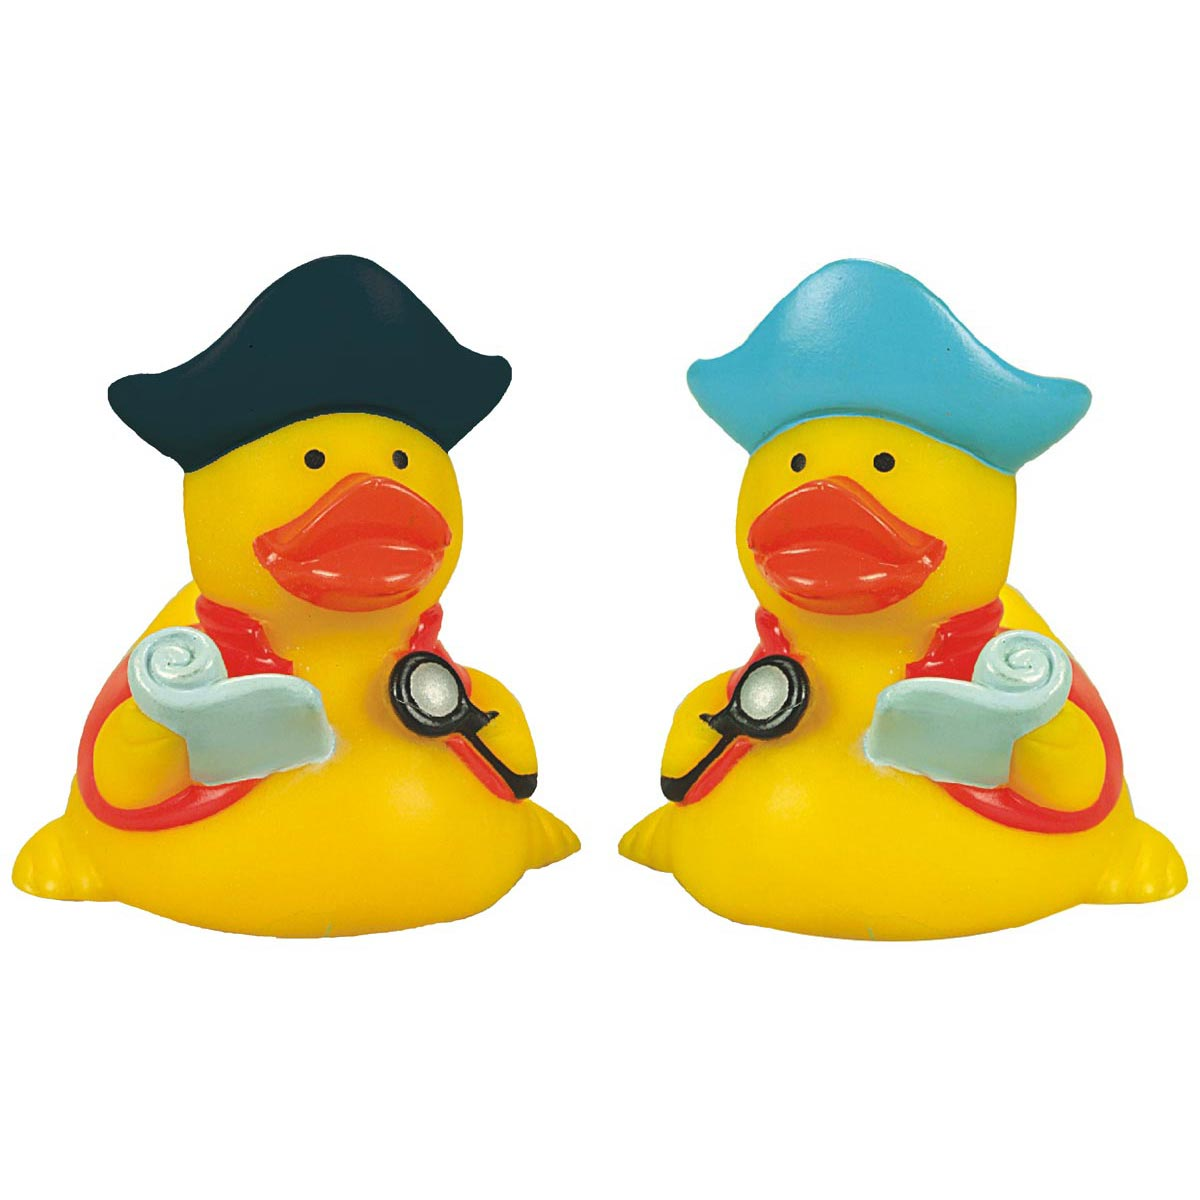 Rubber Pirate Navigator Duck Toy